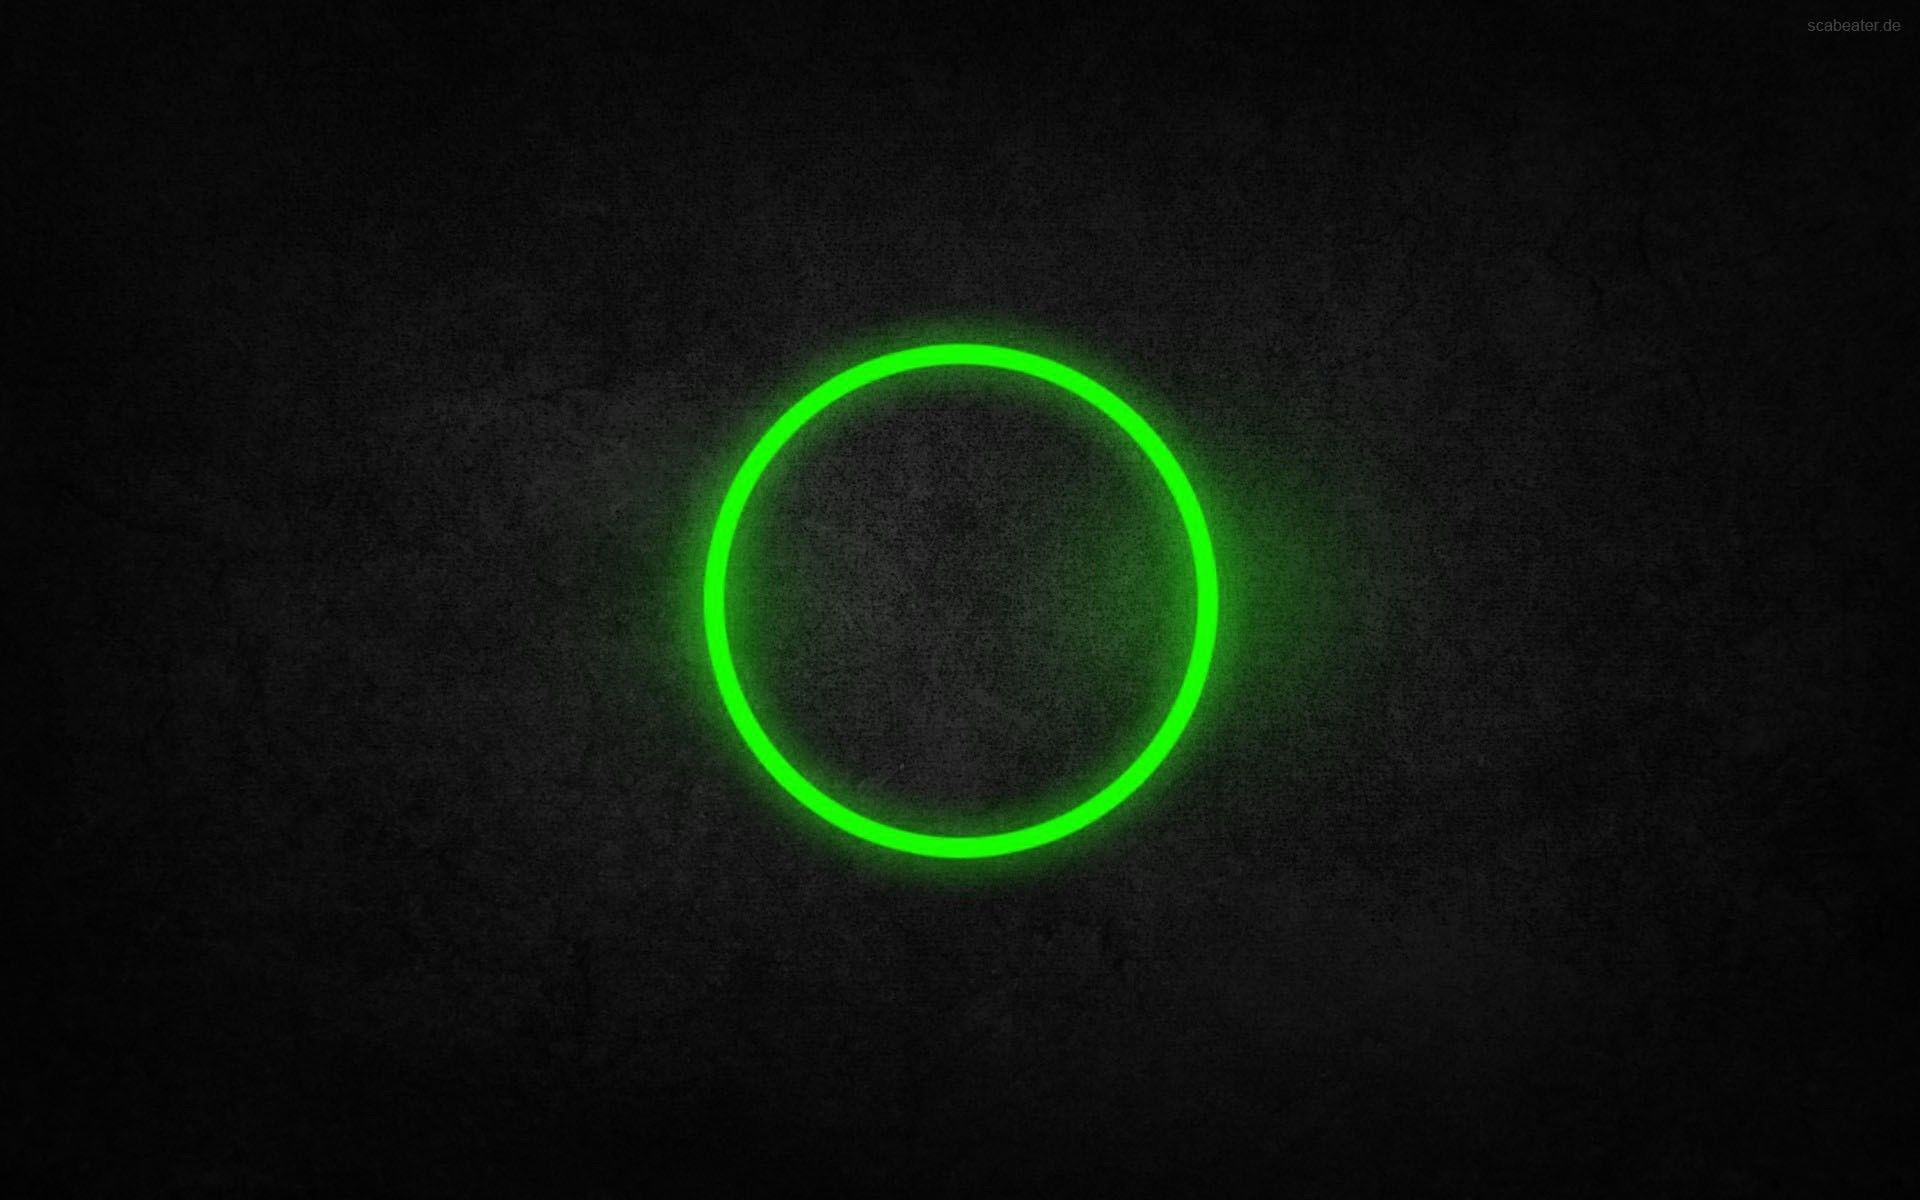 General 1920x1200 Green Circle With Images Dark Black Wallpaper Neon Wallpaper Black Hd Wallpaper